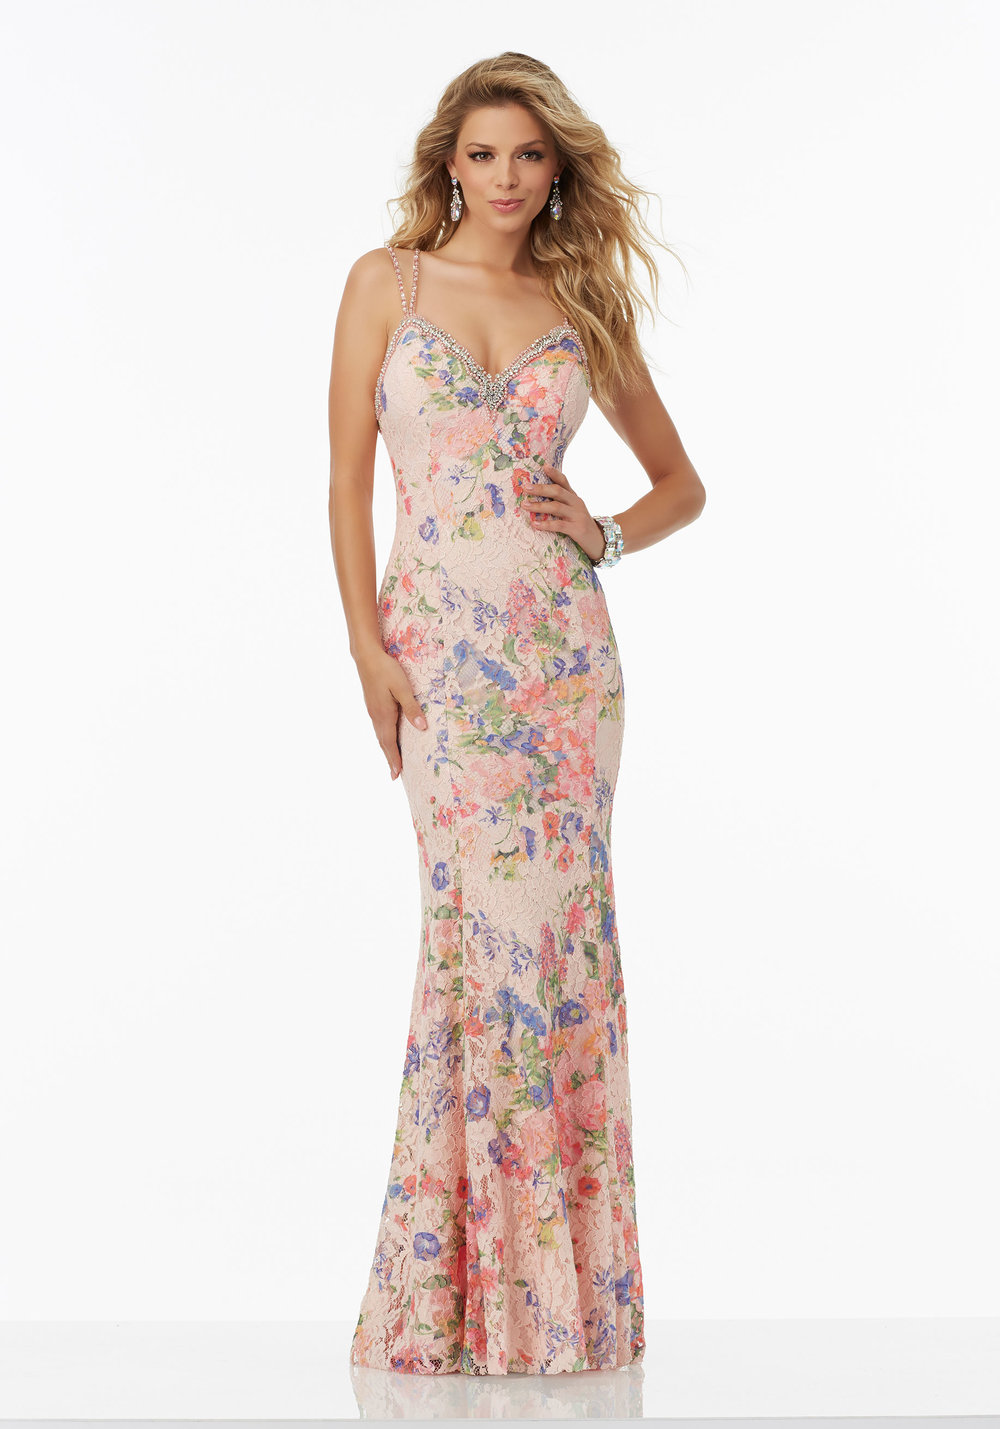 Floral Printed Lace Prom Dress